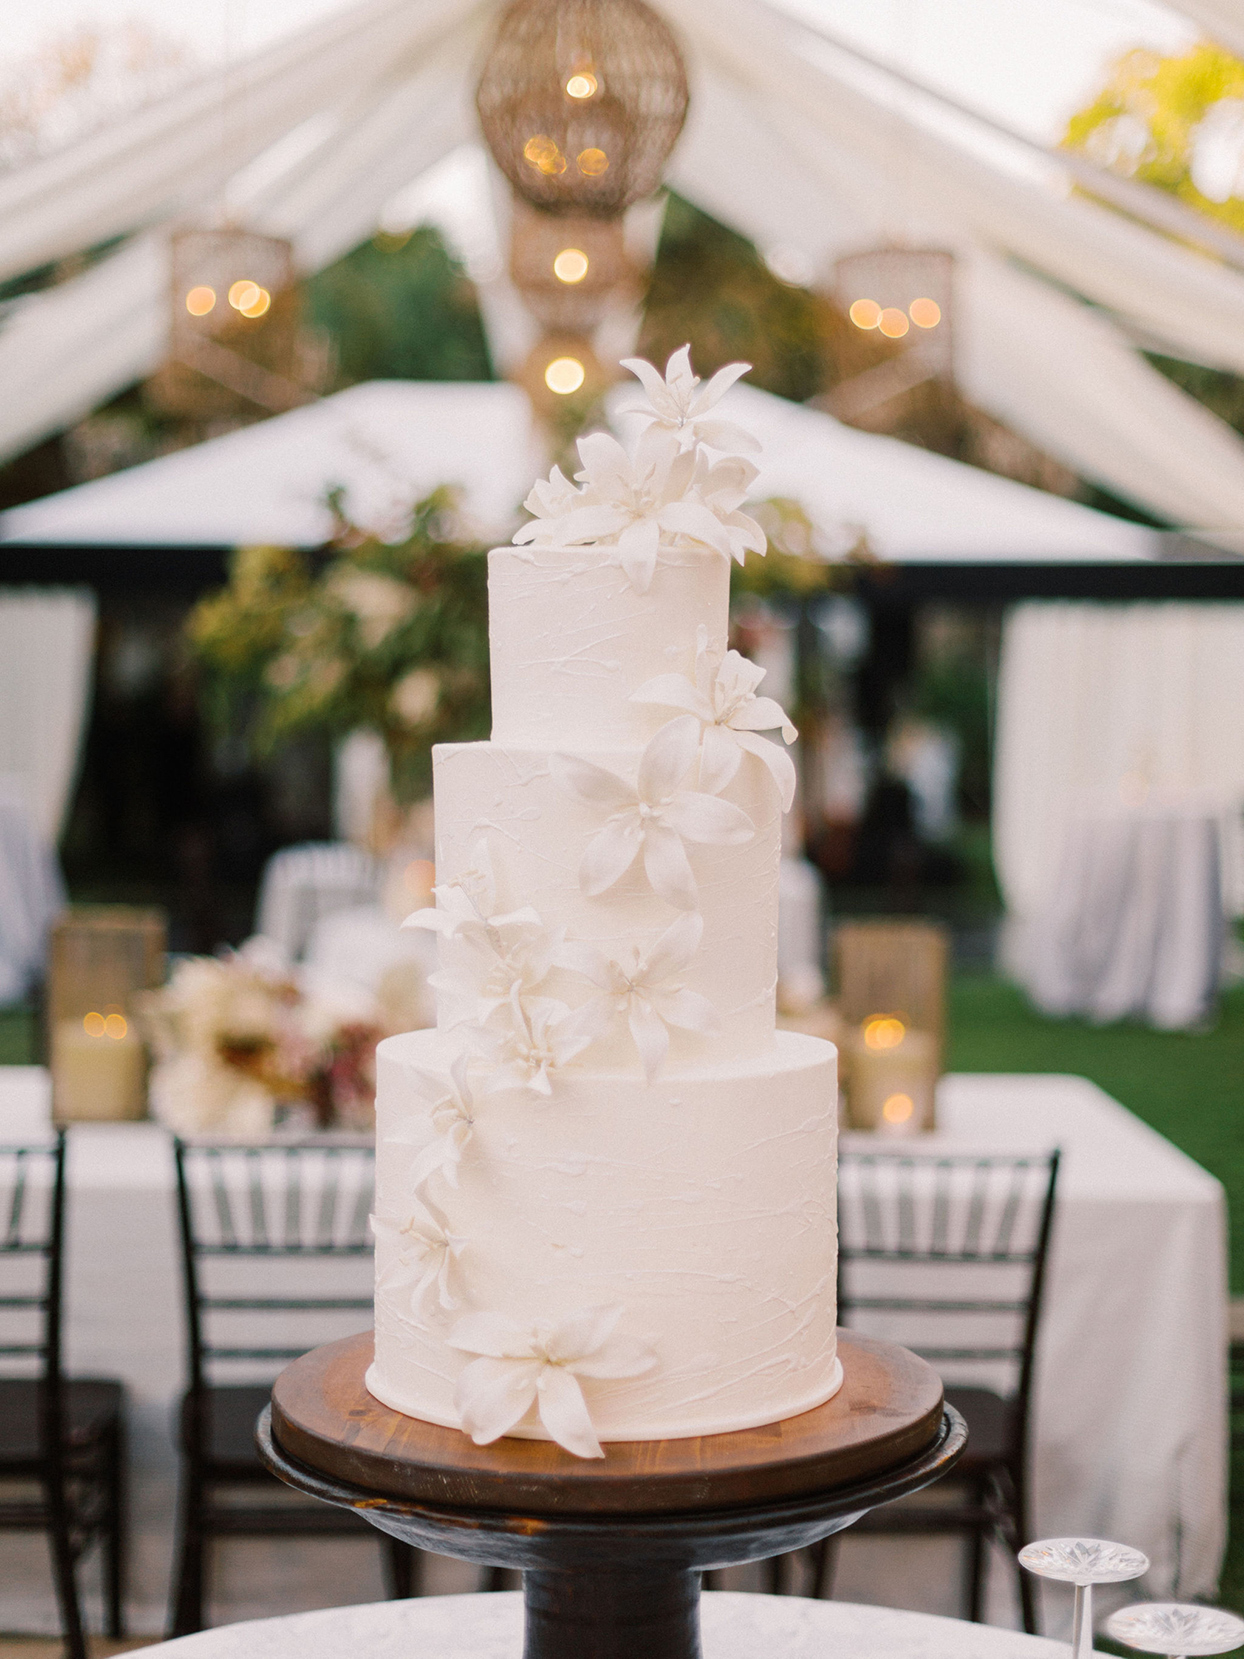 megan parking simple white wedding cake with flowers